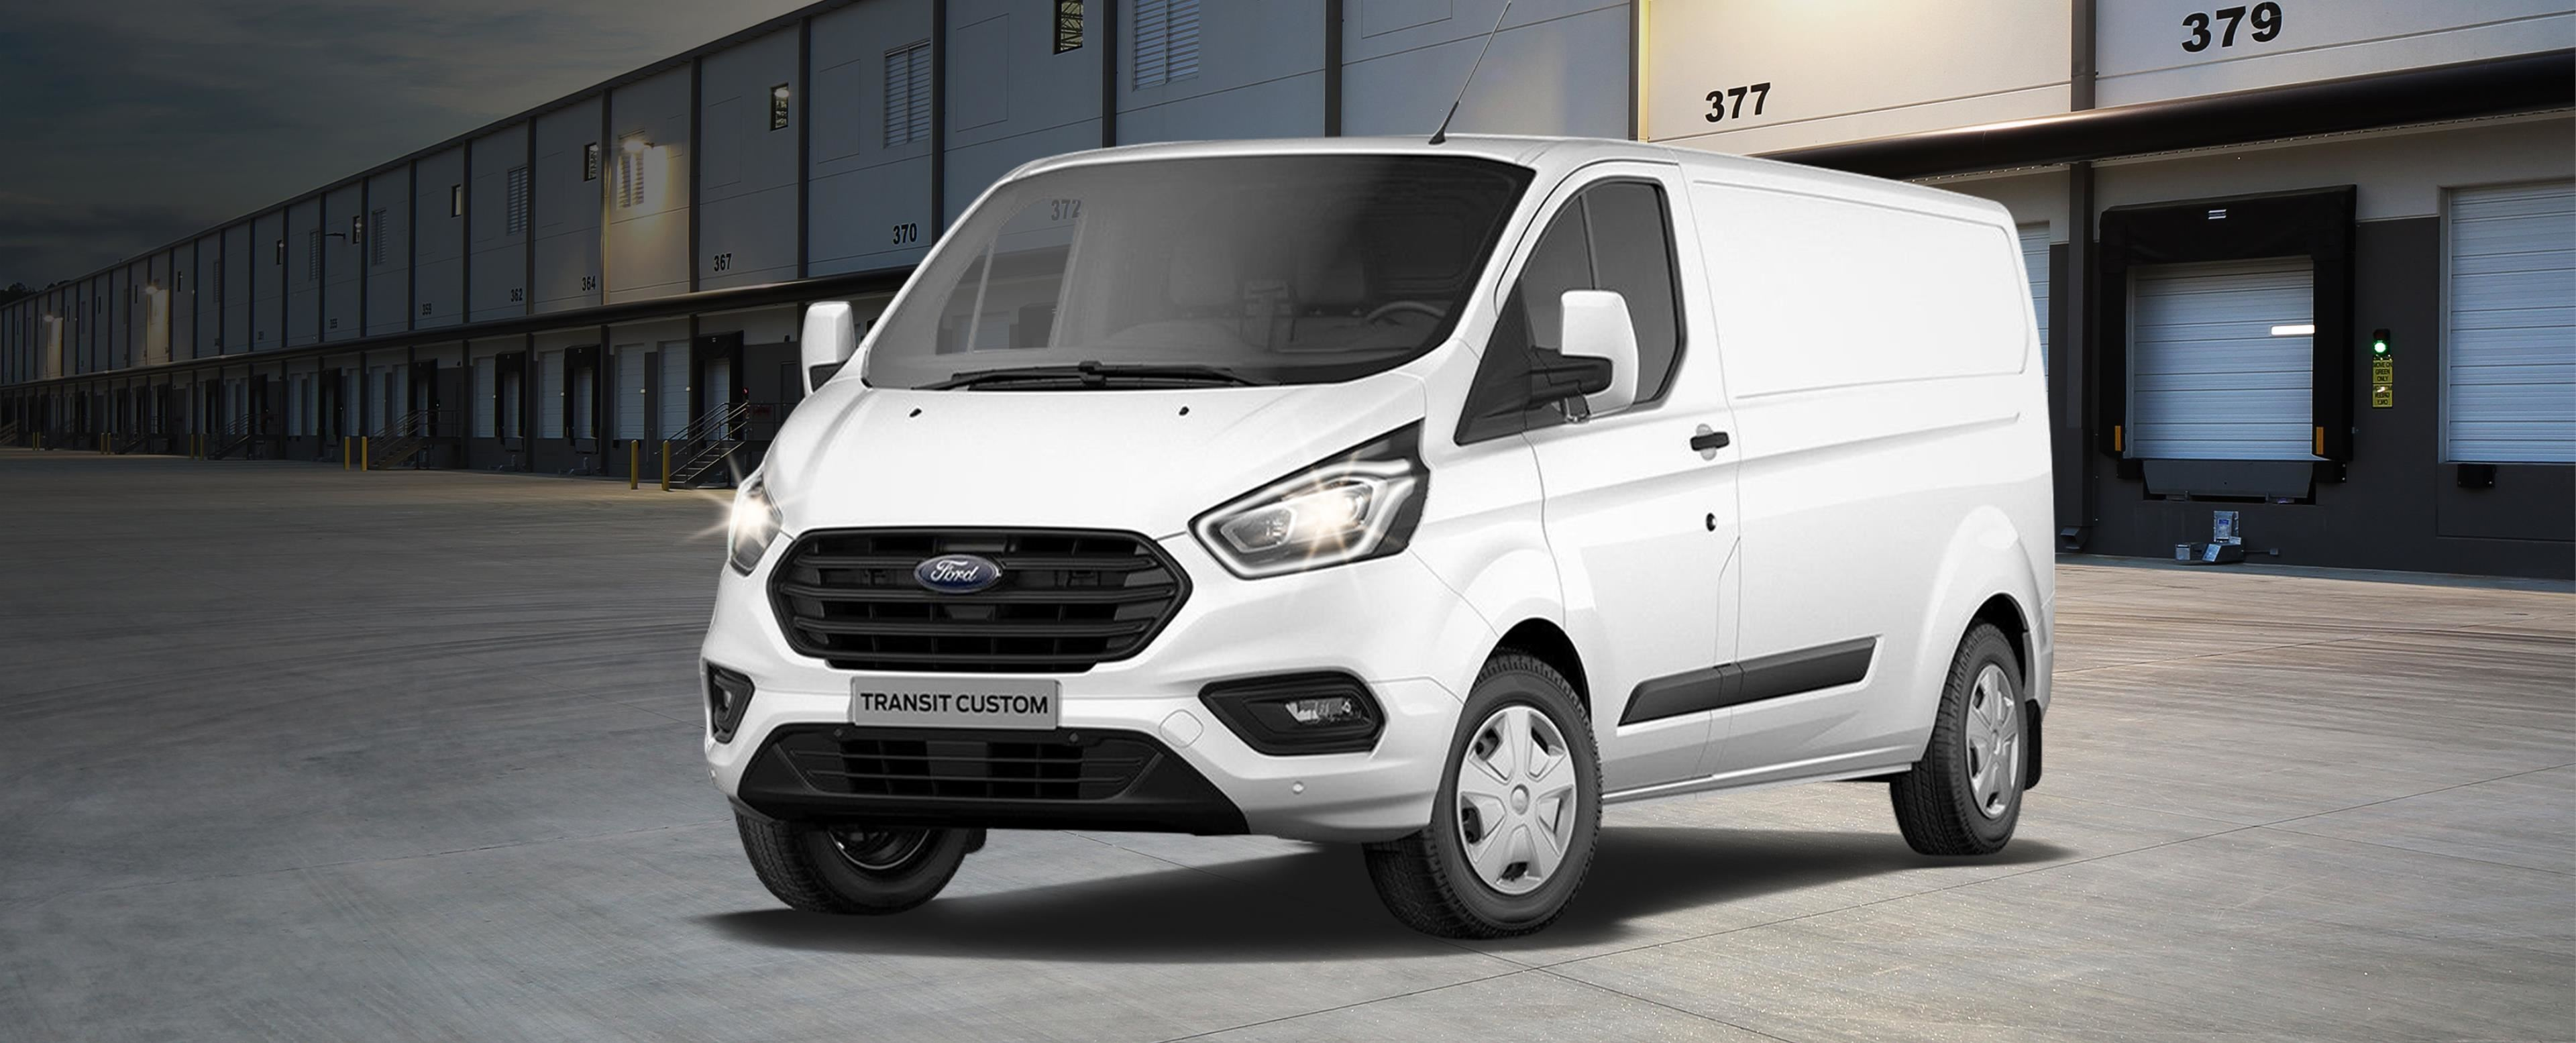 FORD TRANSIT | CUSTOM VAN